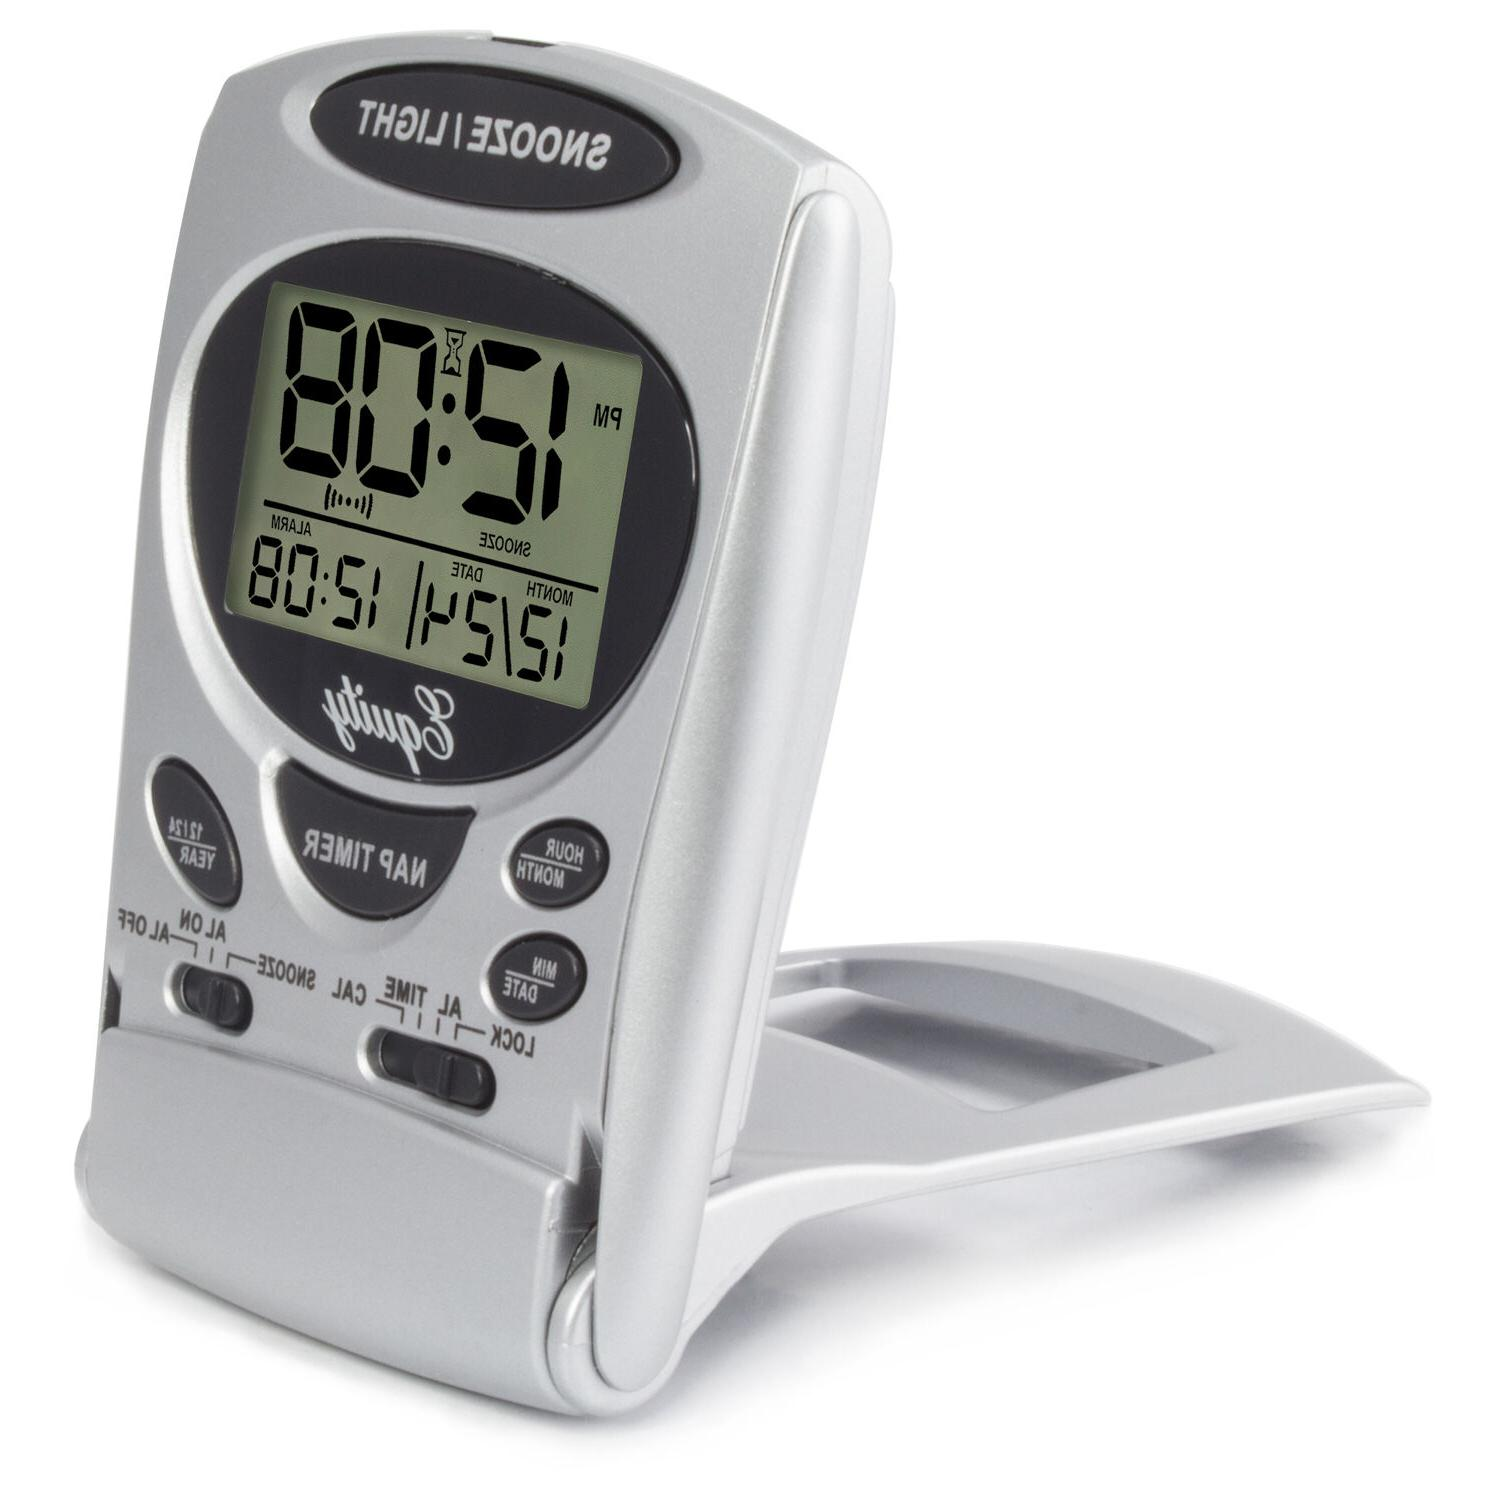 31300 Equity Crosse LCD Digital Travel Date & Day